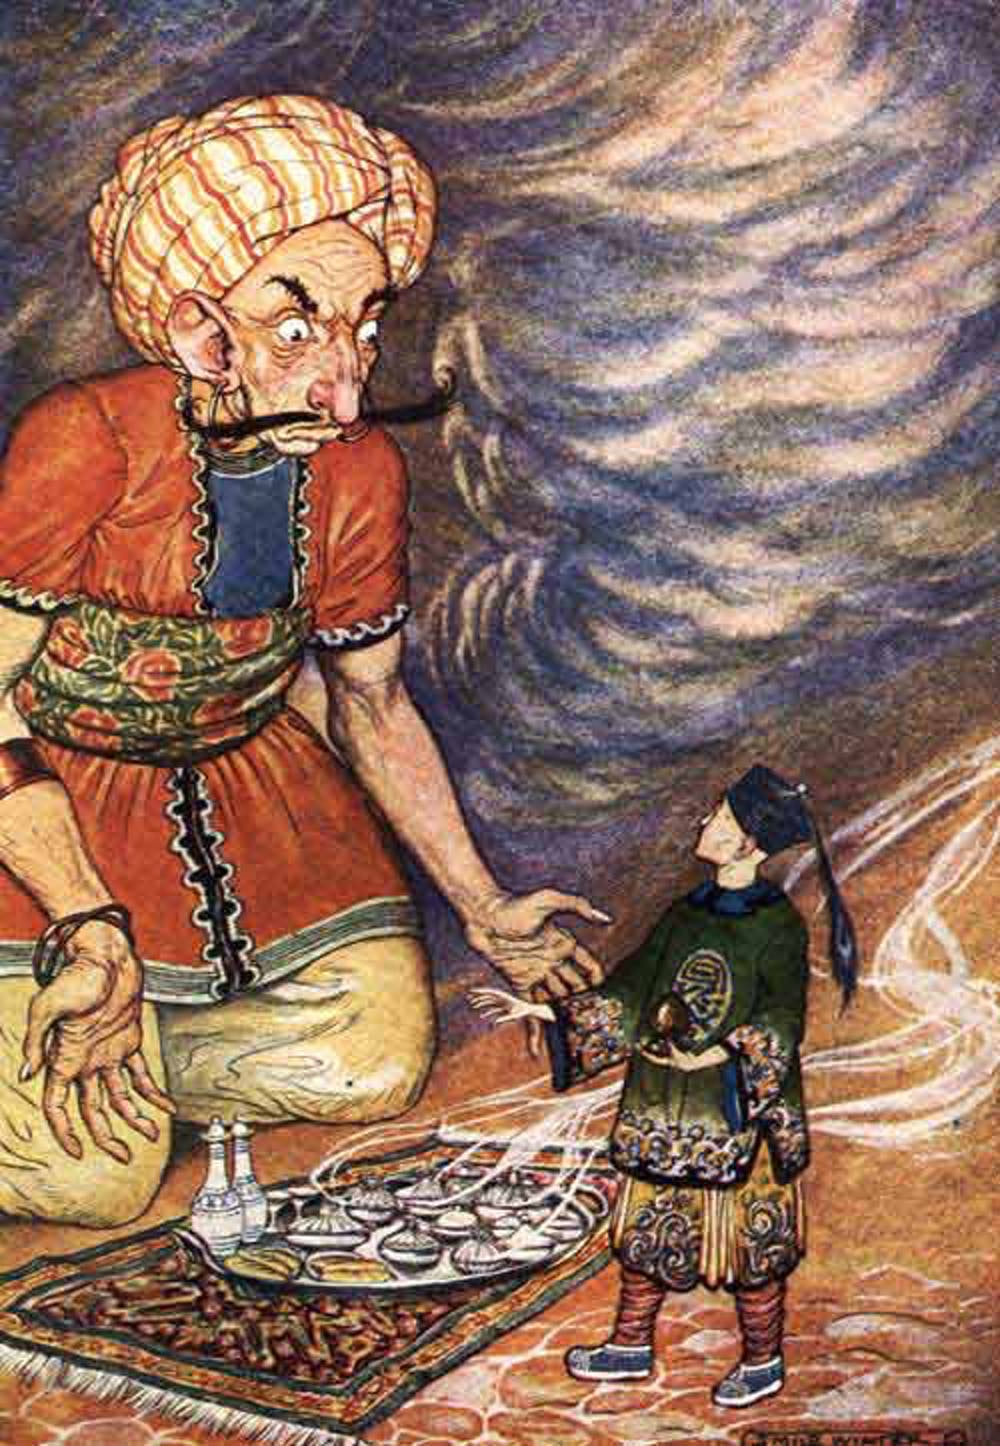 How the Arabian Nights stories morphed into stereotypes